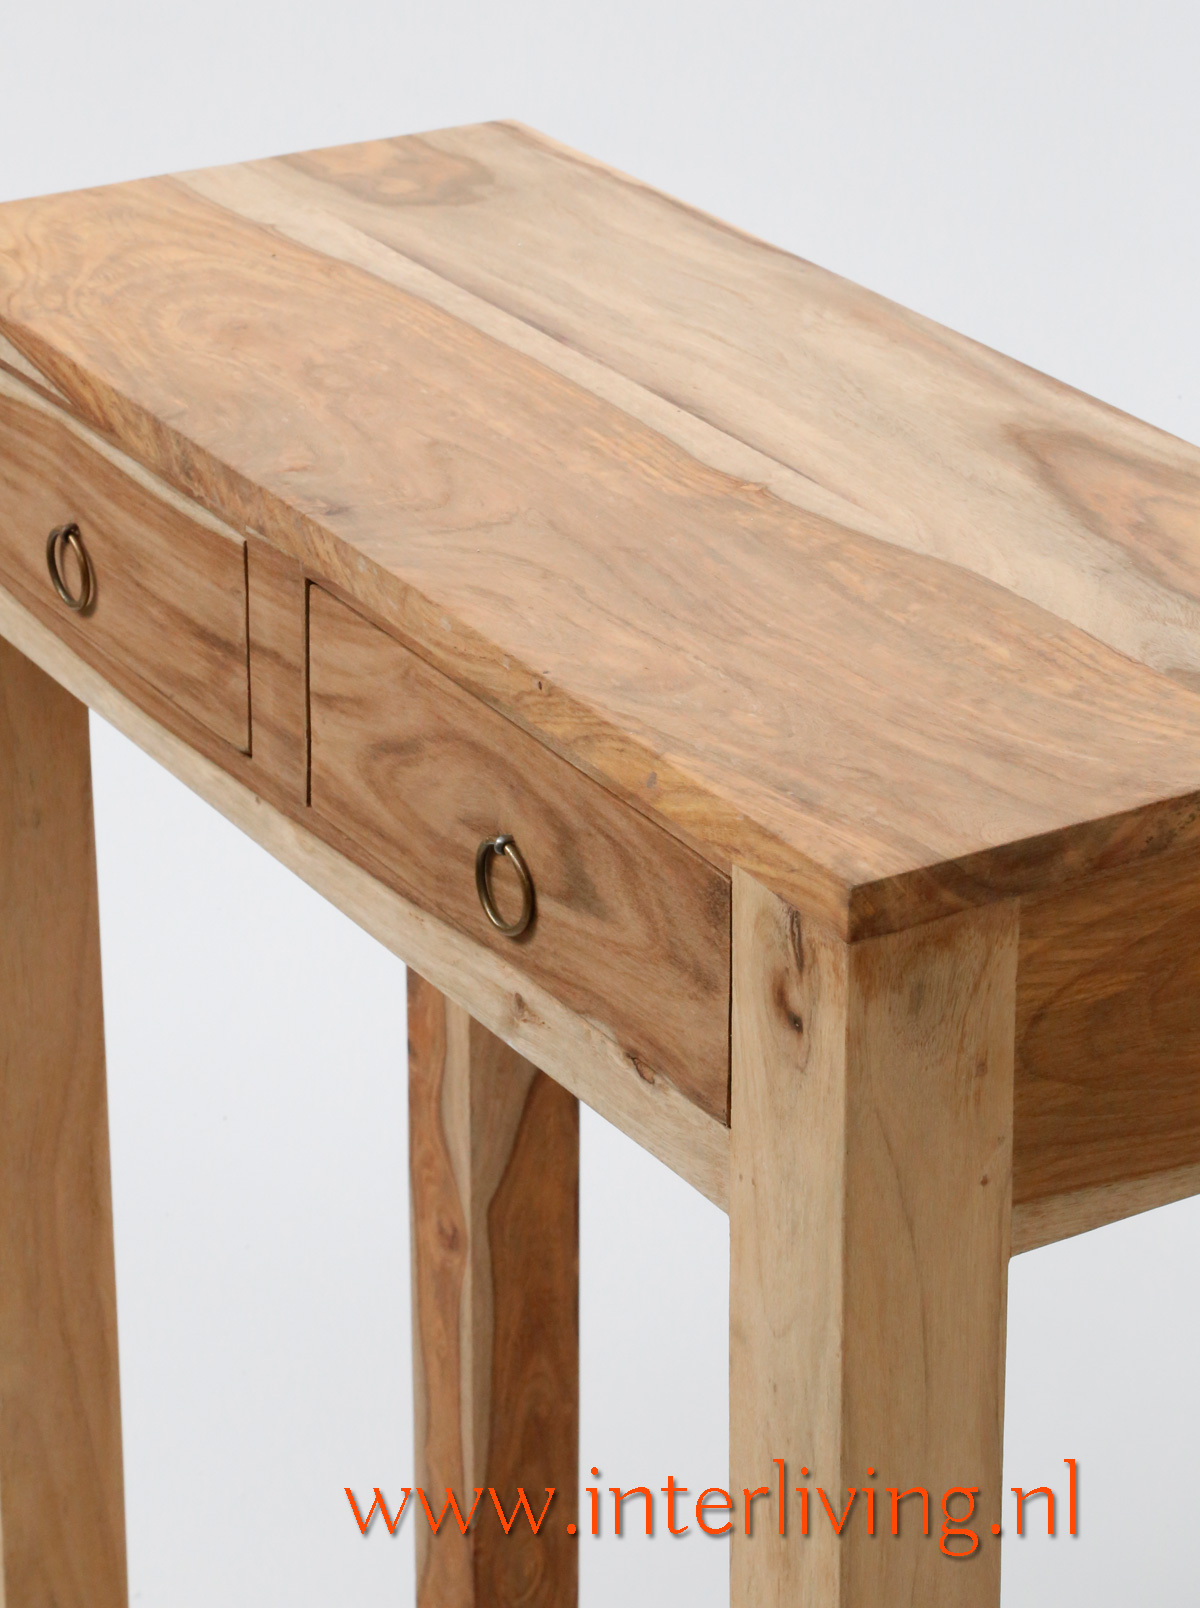 Massief Houten Side Table.Wandtafel Of Sidetable Van Duurzaam Sheesham Hout Met Twee